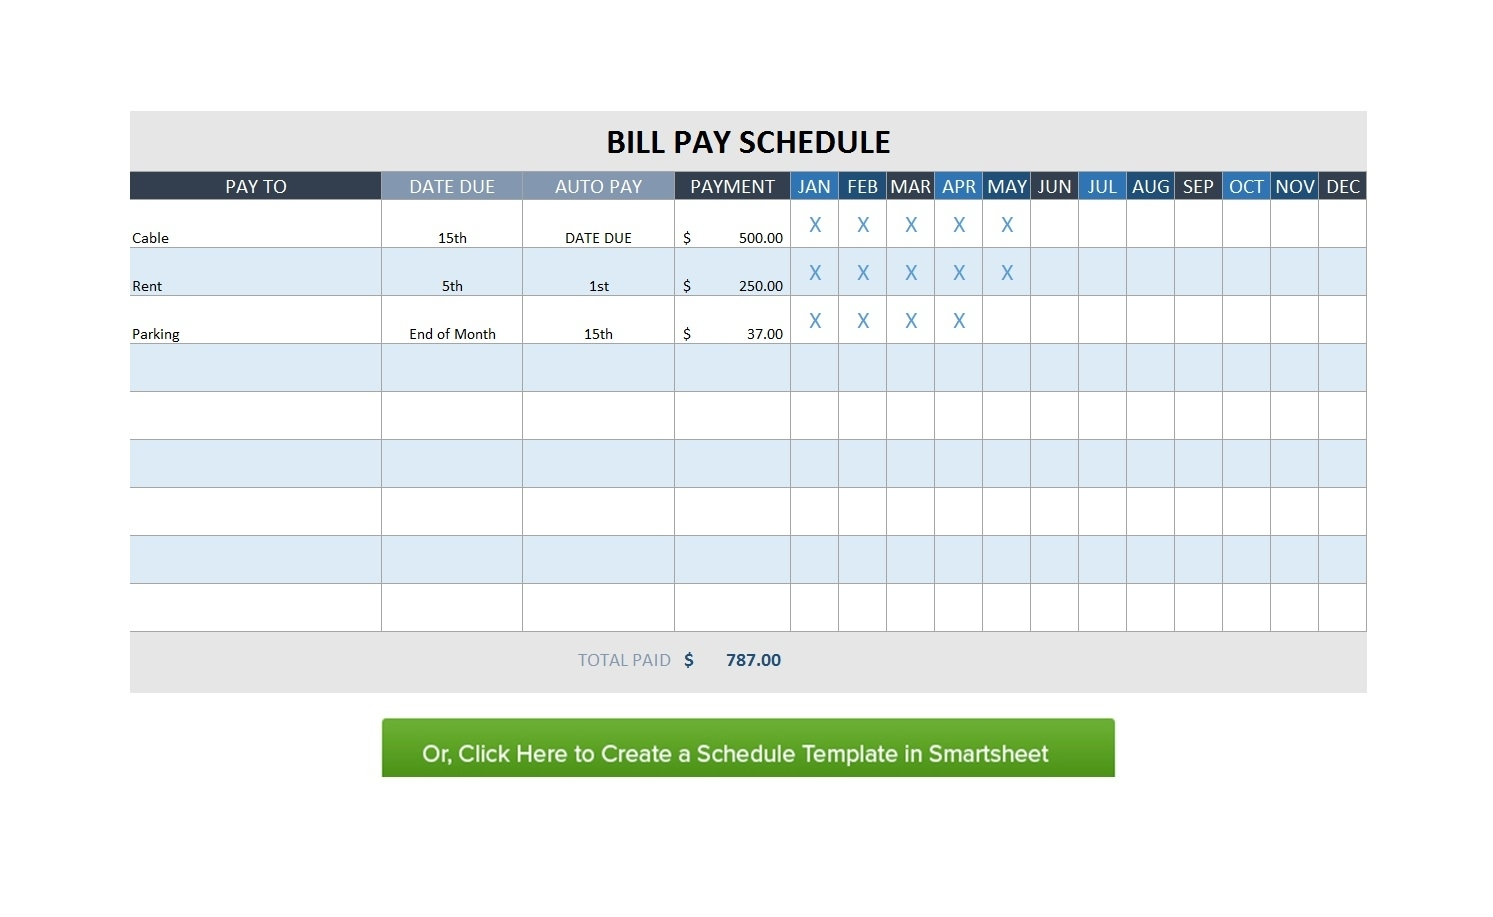 32 Free Bill Pay Checklists & Bill Calendars (Pdf, Word & Excel) with Blank Monthly Bills Calendar Printable